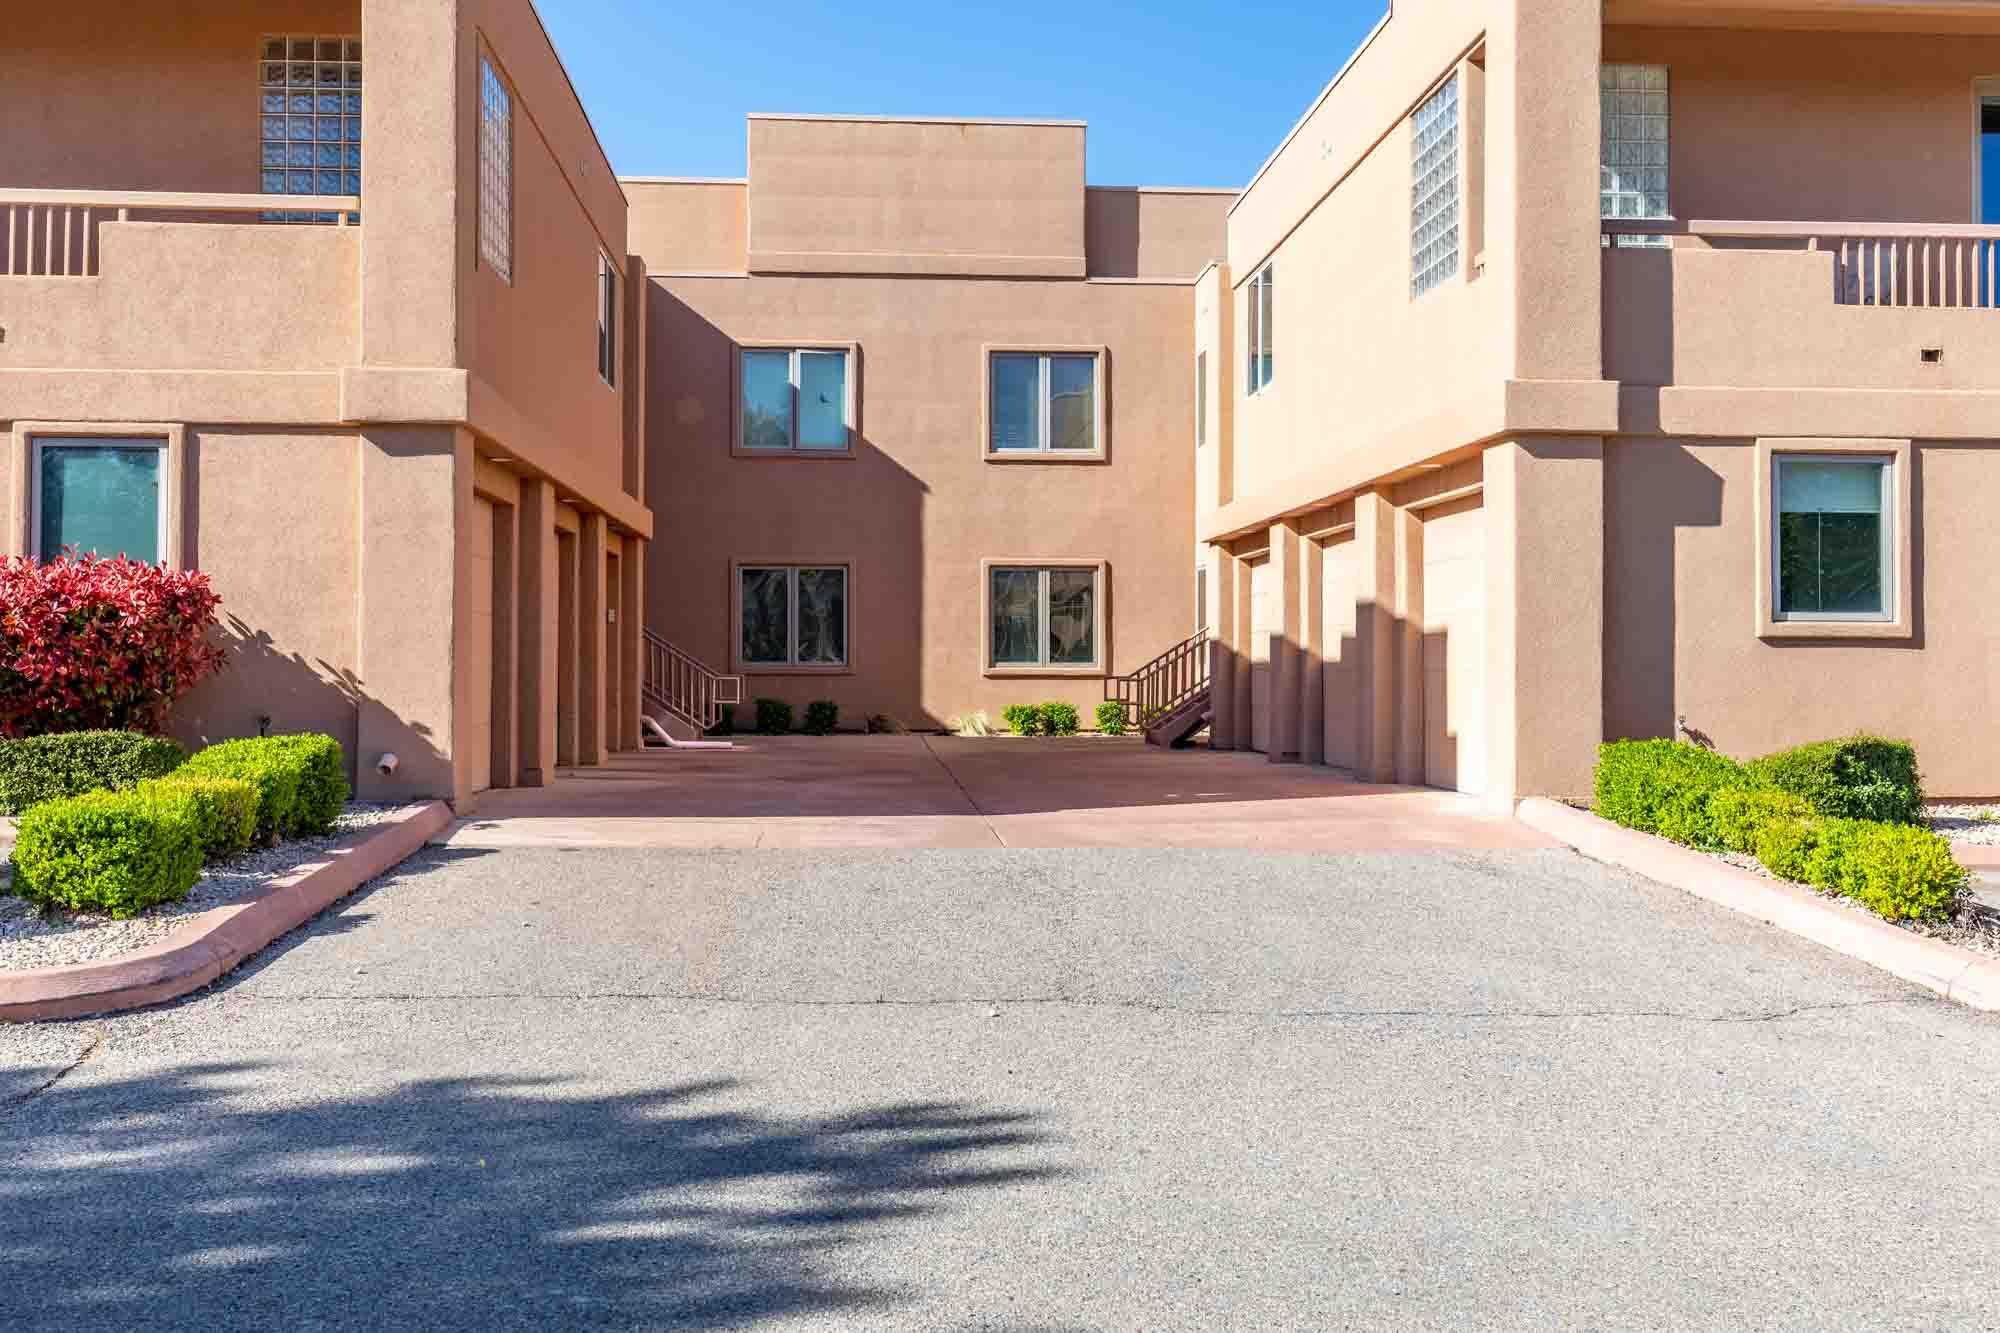 89520 271 Country LN St George UT